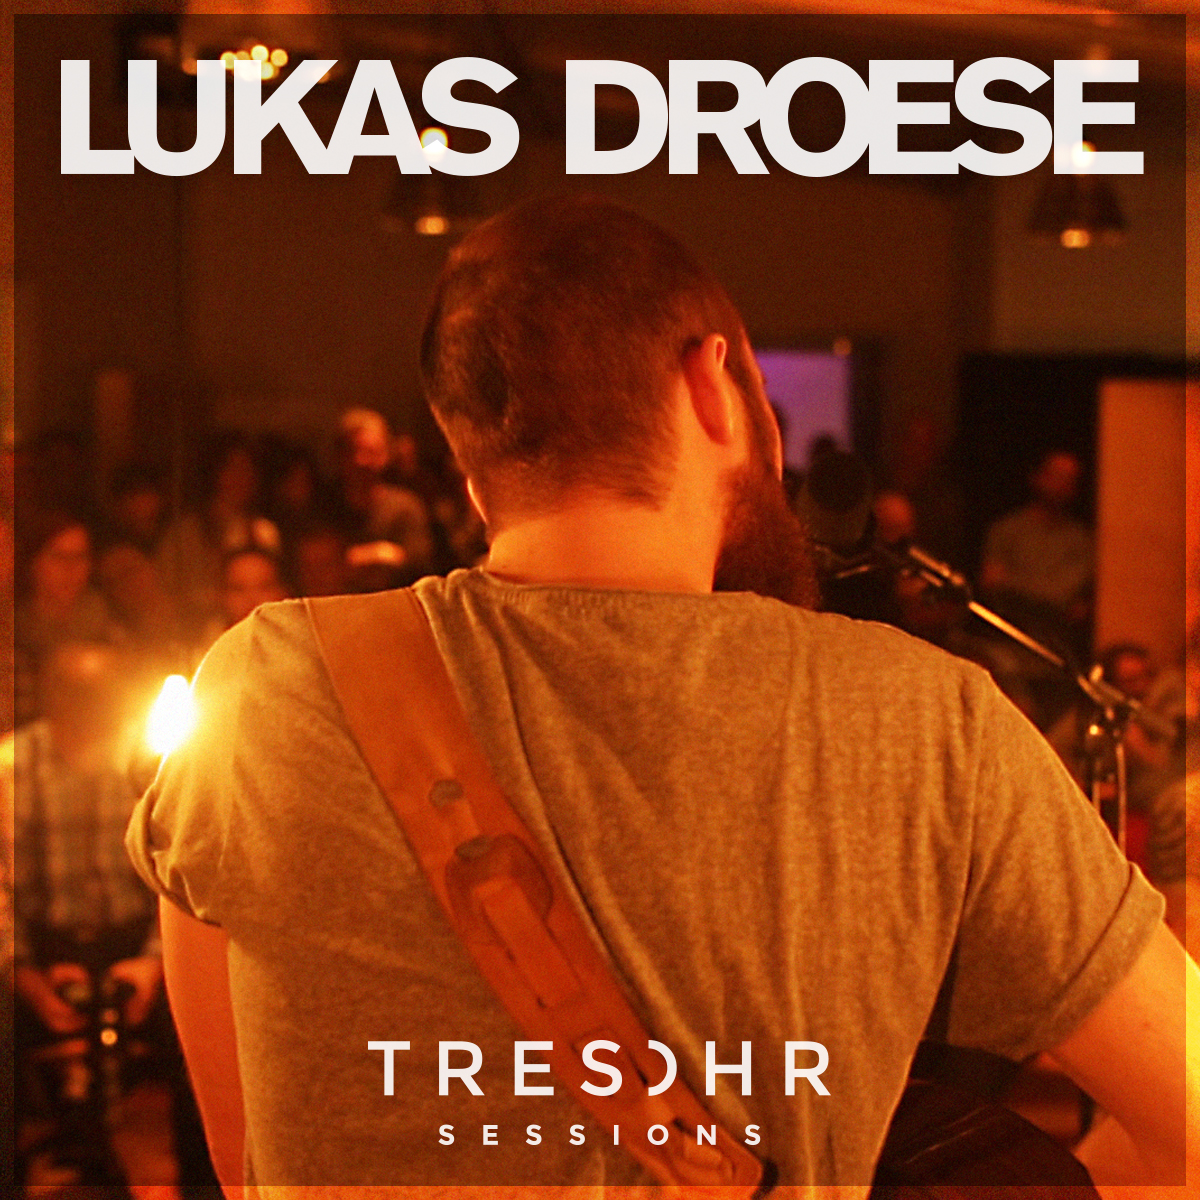 TRESOHR SESSIONS: Lukas Droese